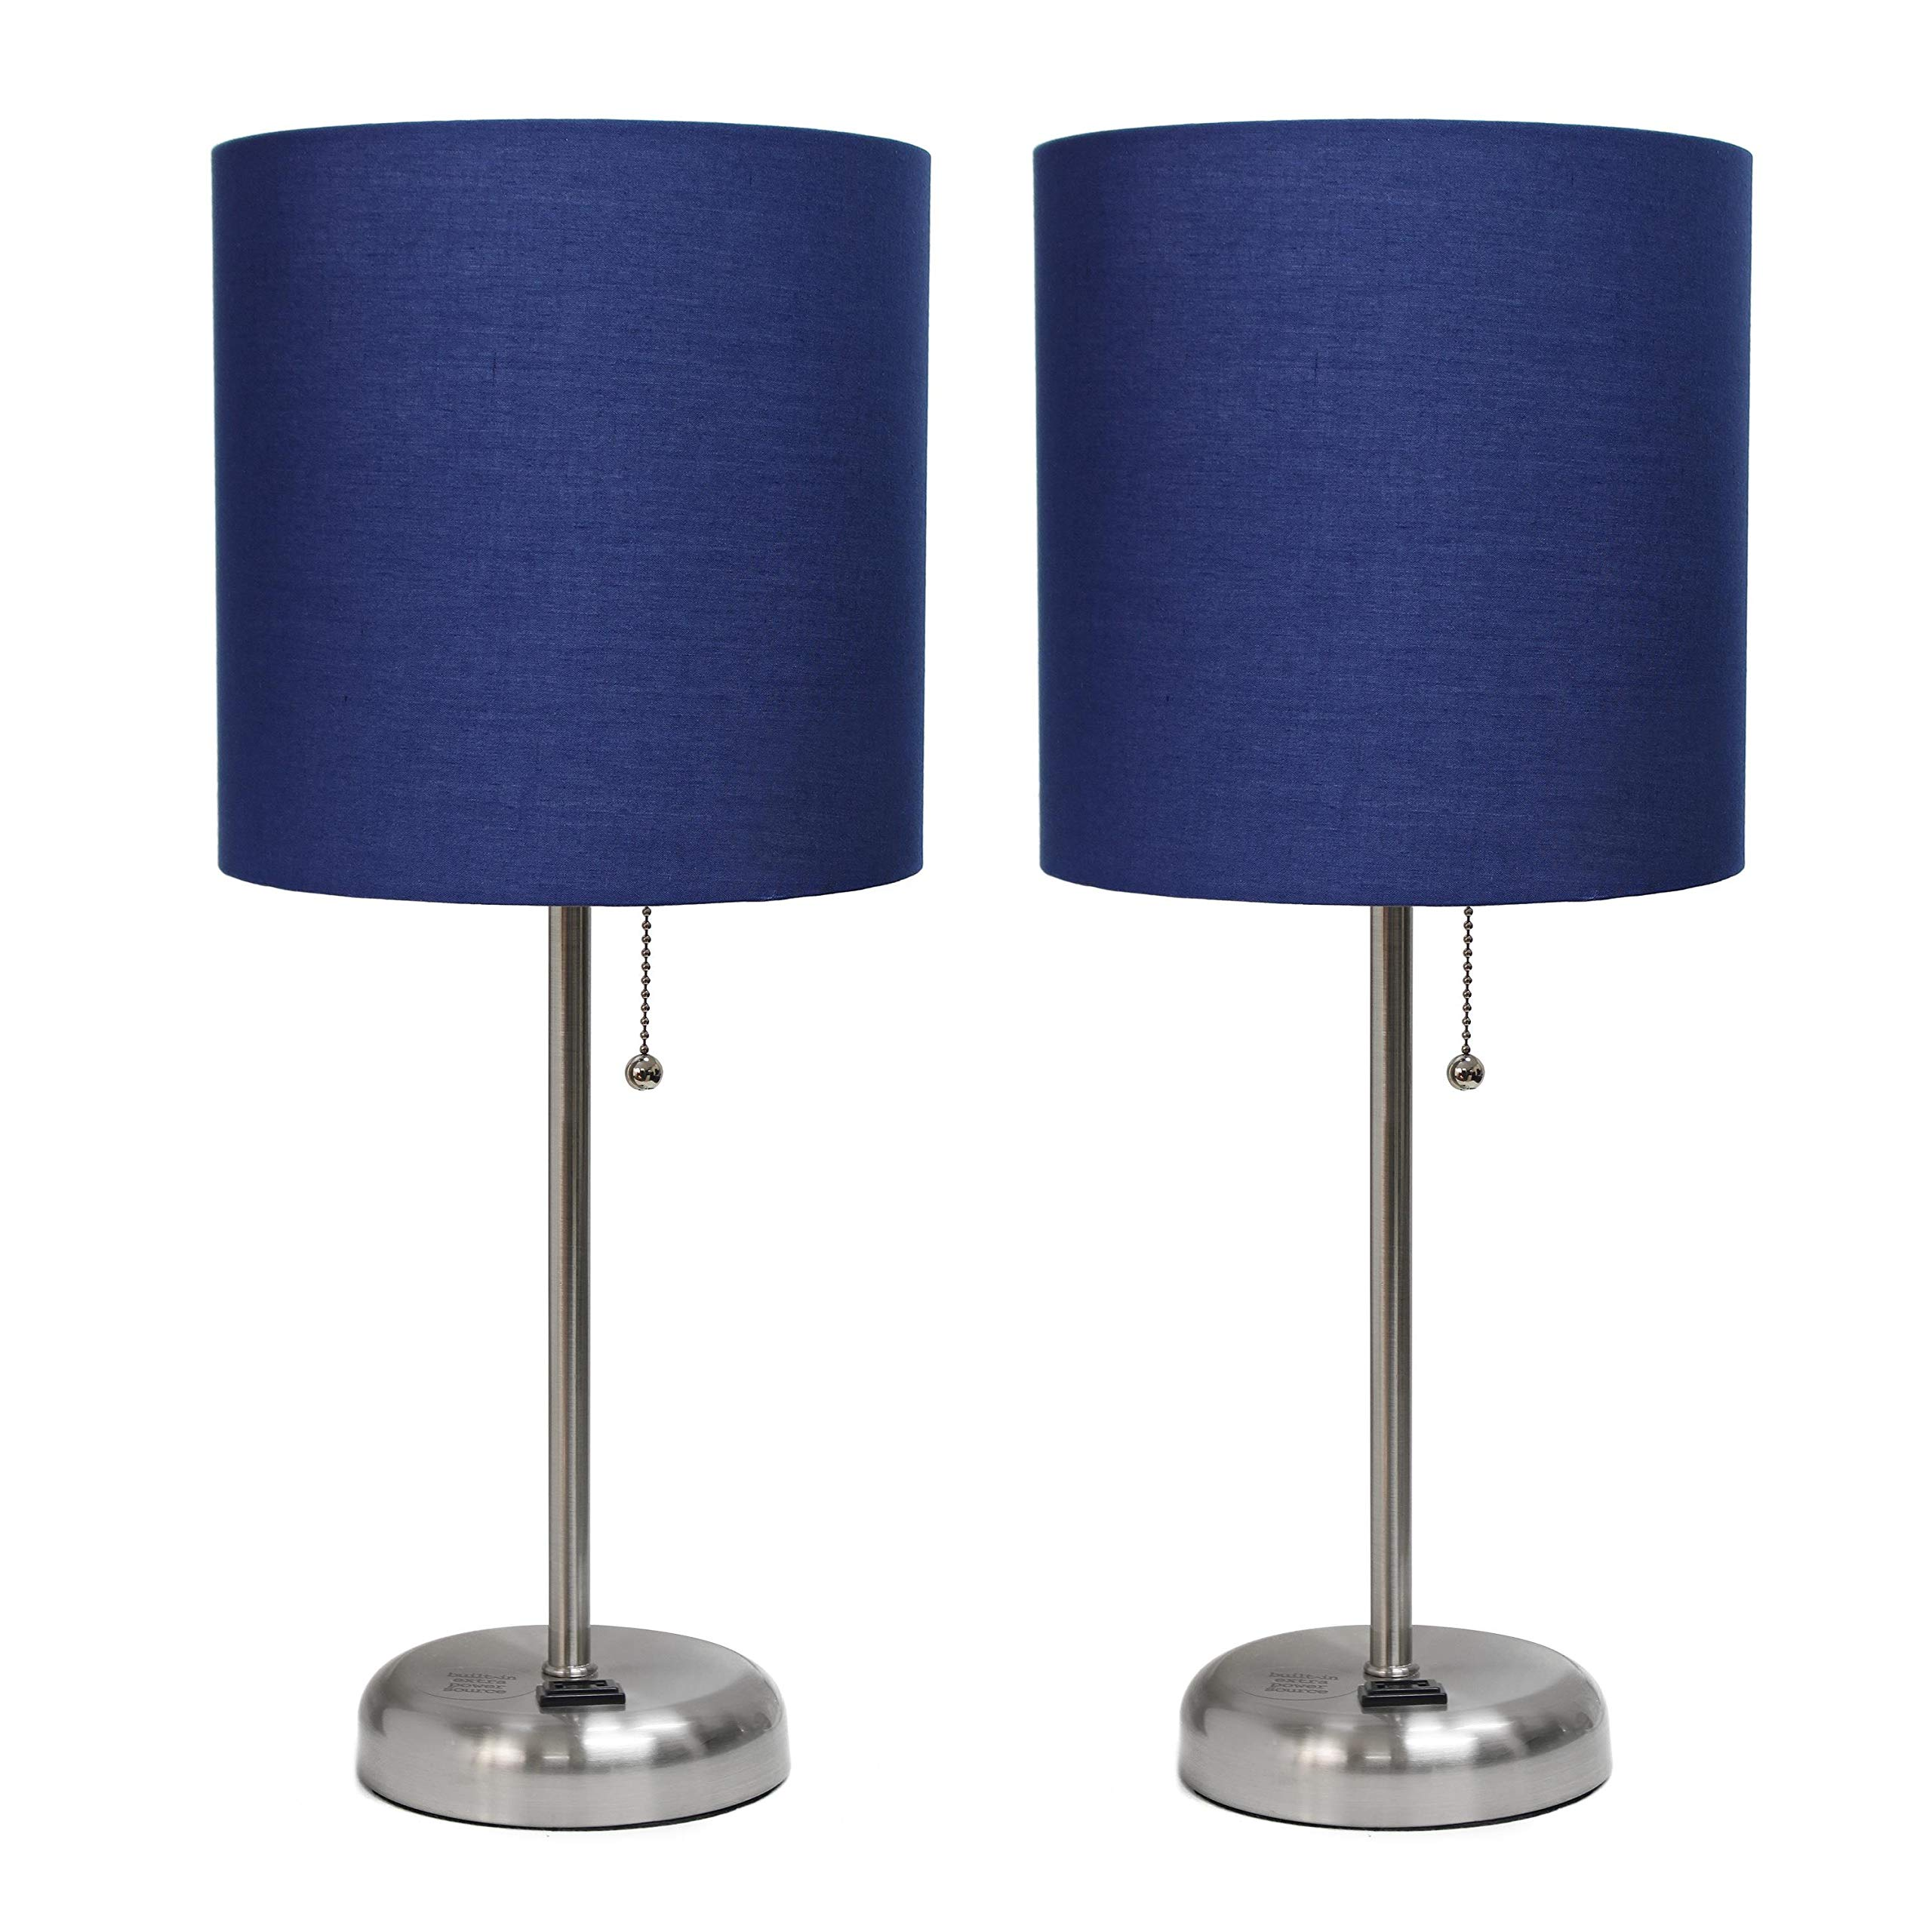 Brushed Steel Stick Lamp with Charging Outlet and Navy Fabric Shade 2 Pack Set